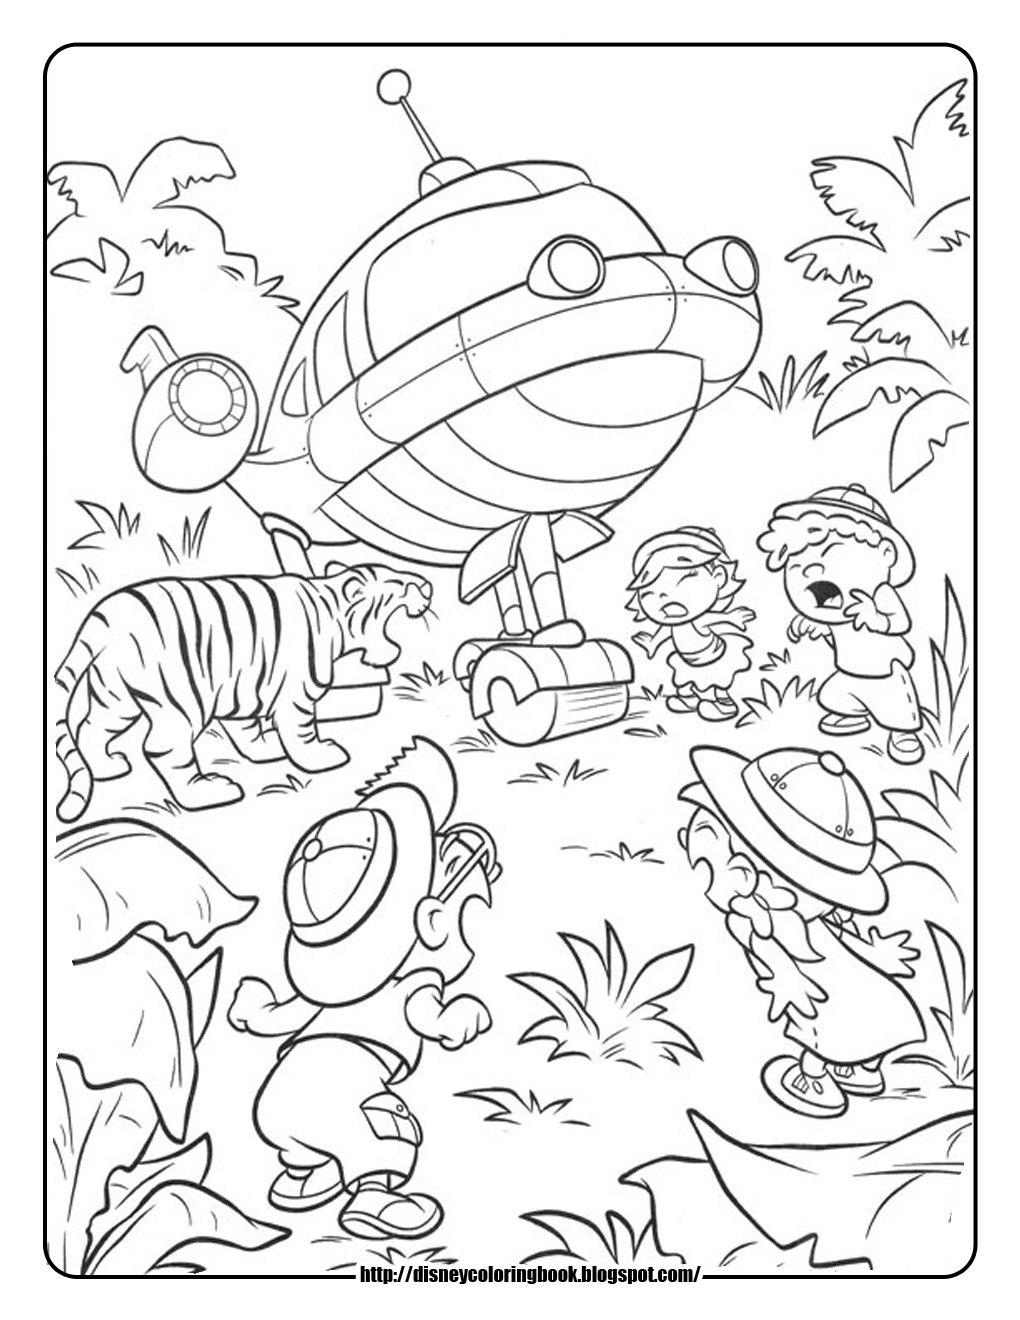 1020x1320 Chic Ideas Little Einsteins Coloring Pages To Print Printable